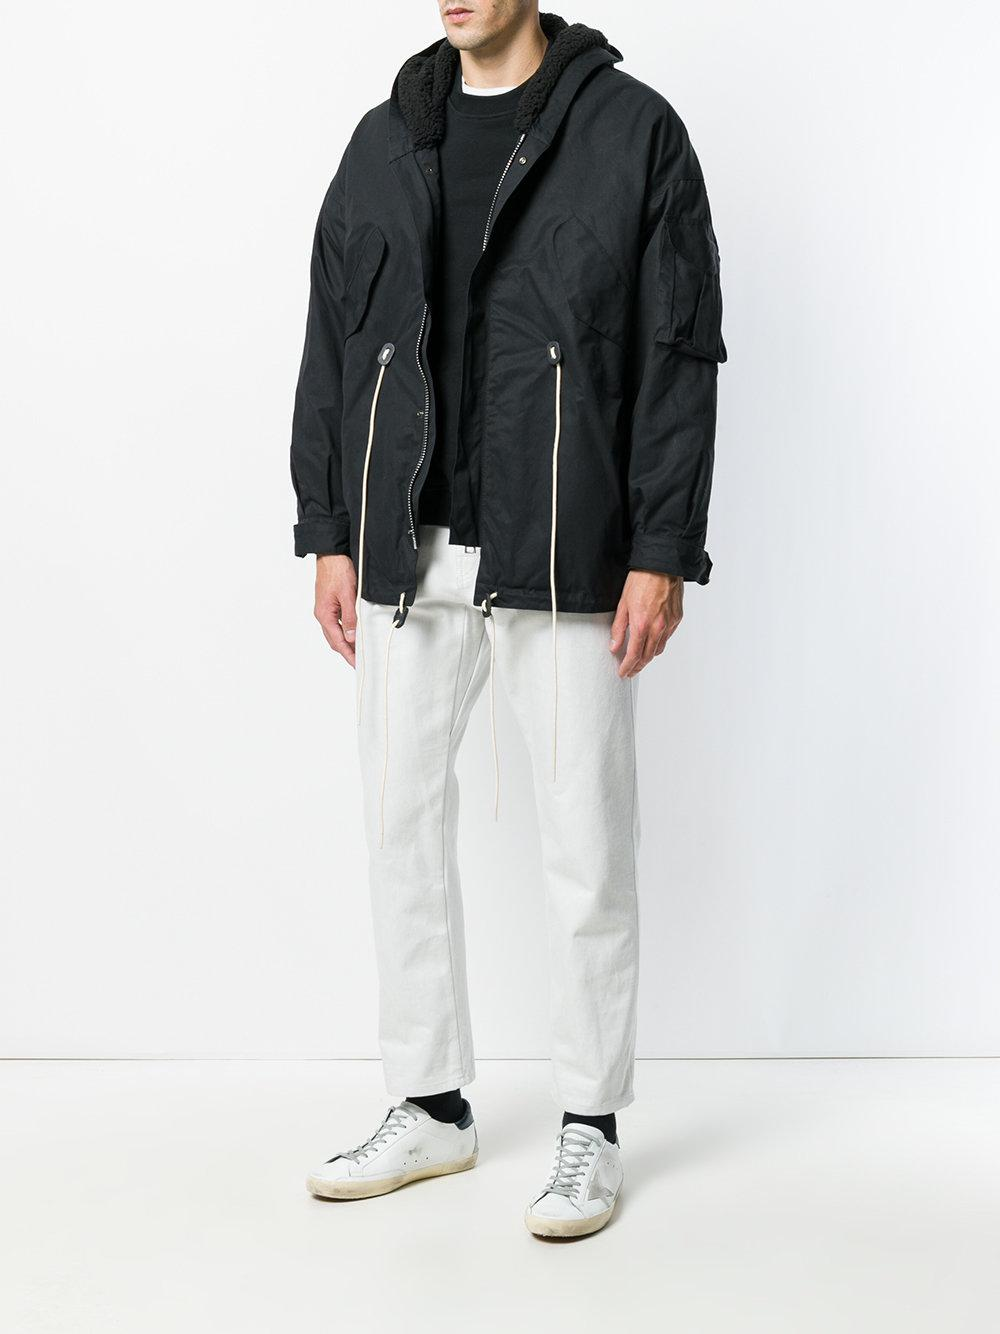 Represent Cotton Cargo Hooded Jacket in Black for Men